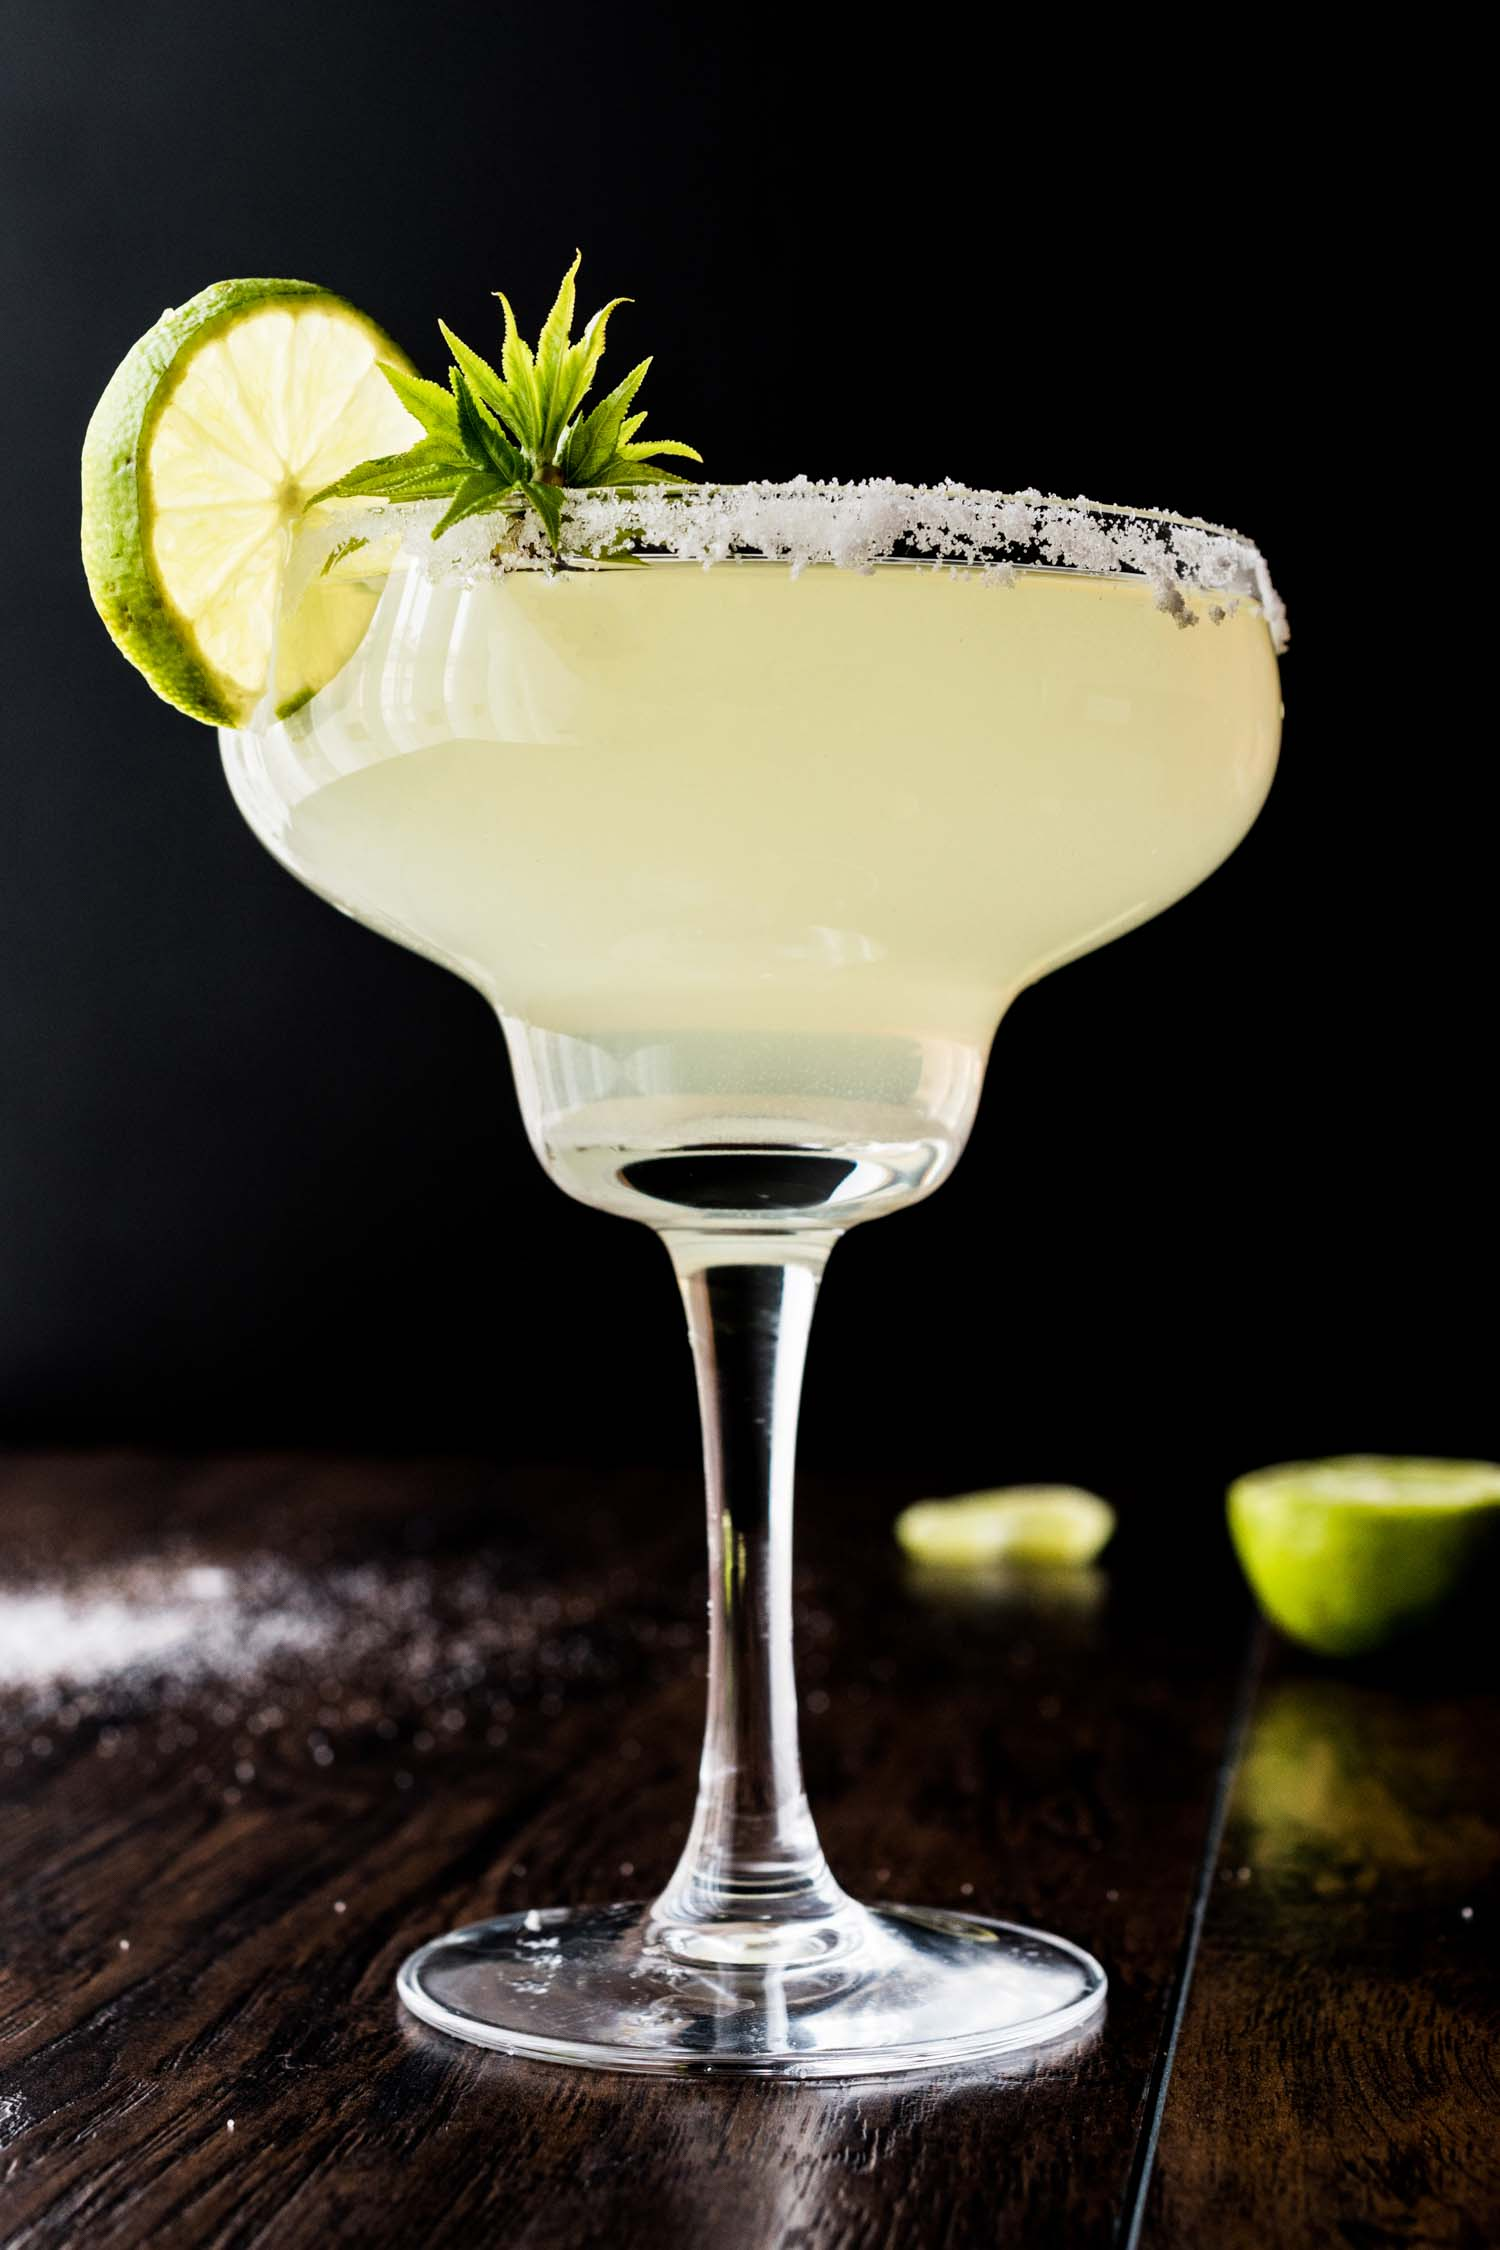 Classic Margarita Cocktail with lime and salt, one of the most popular cocktails around the world